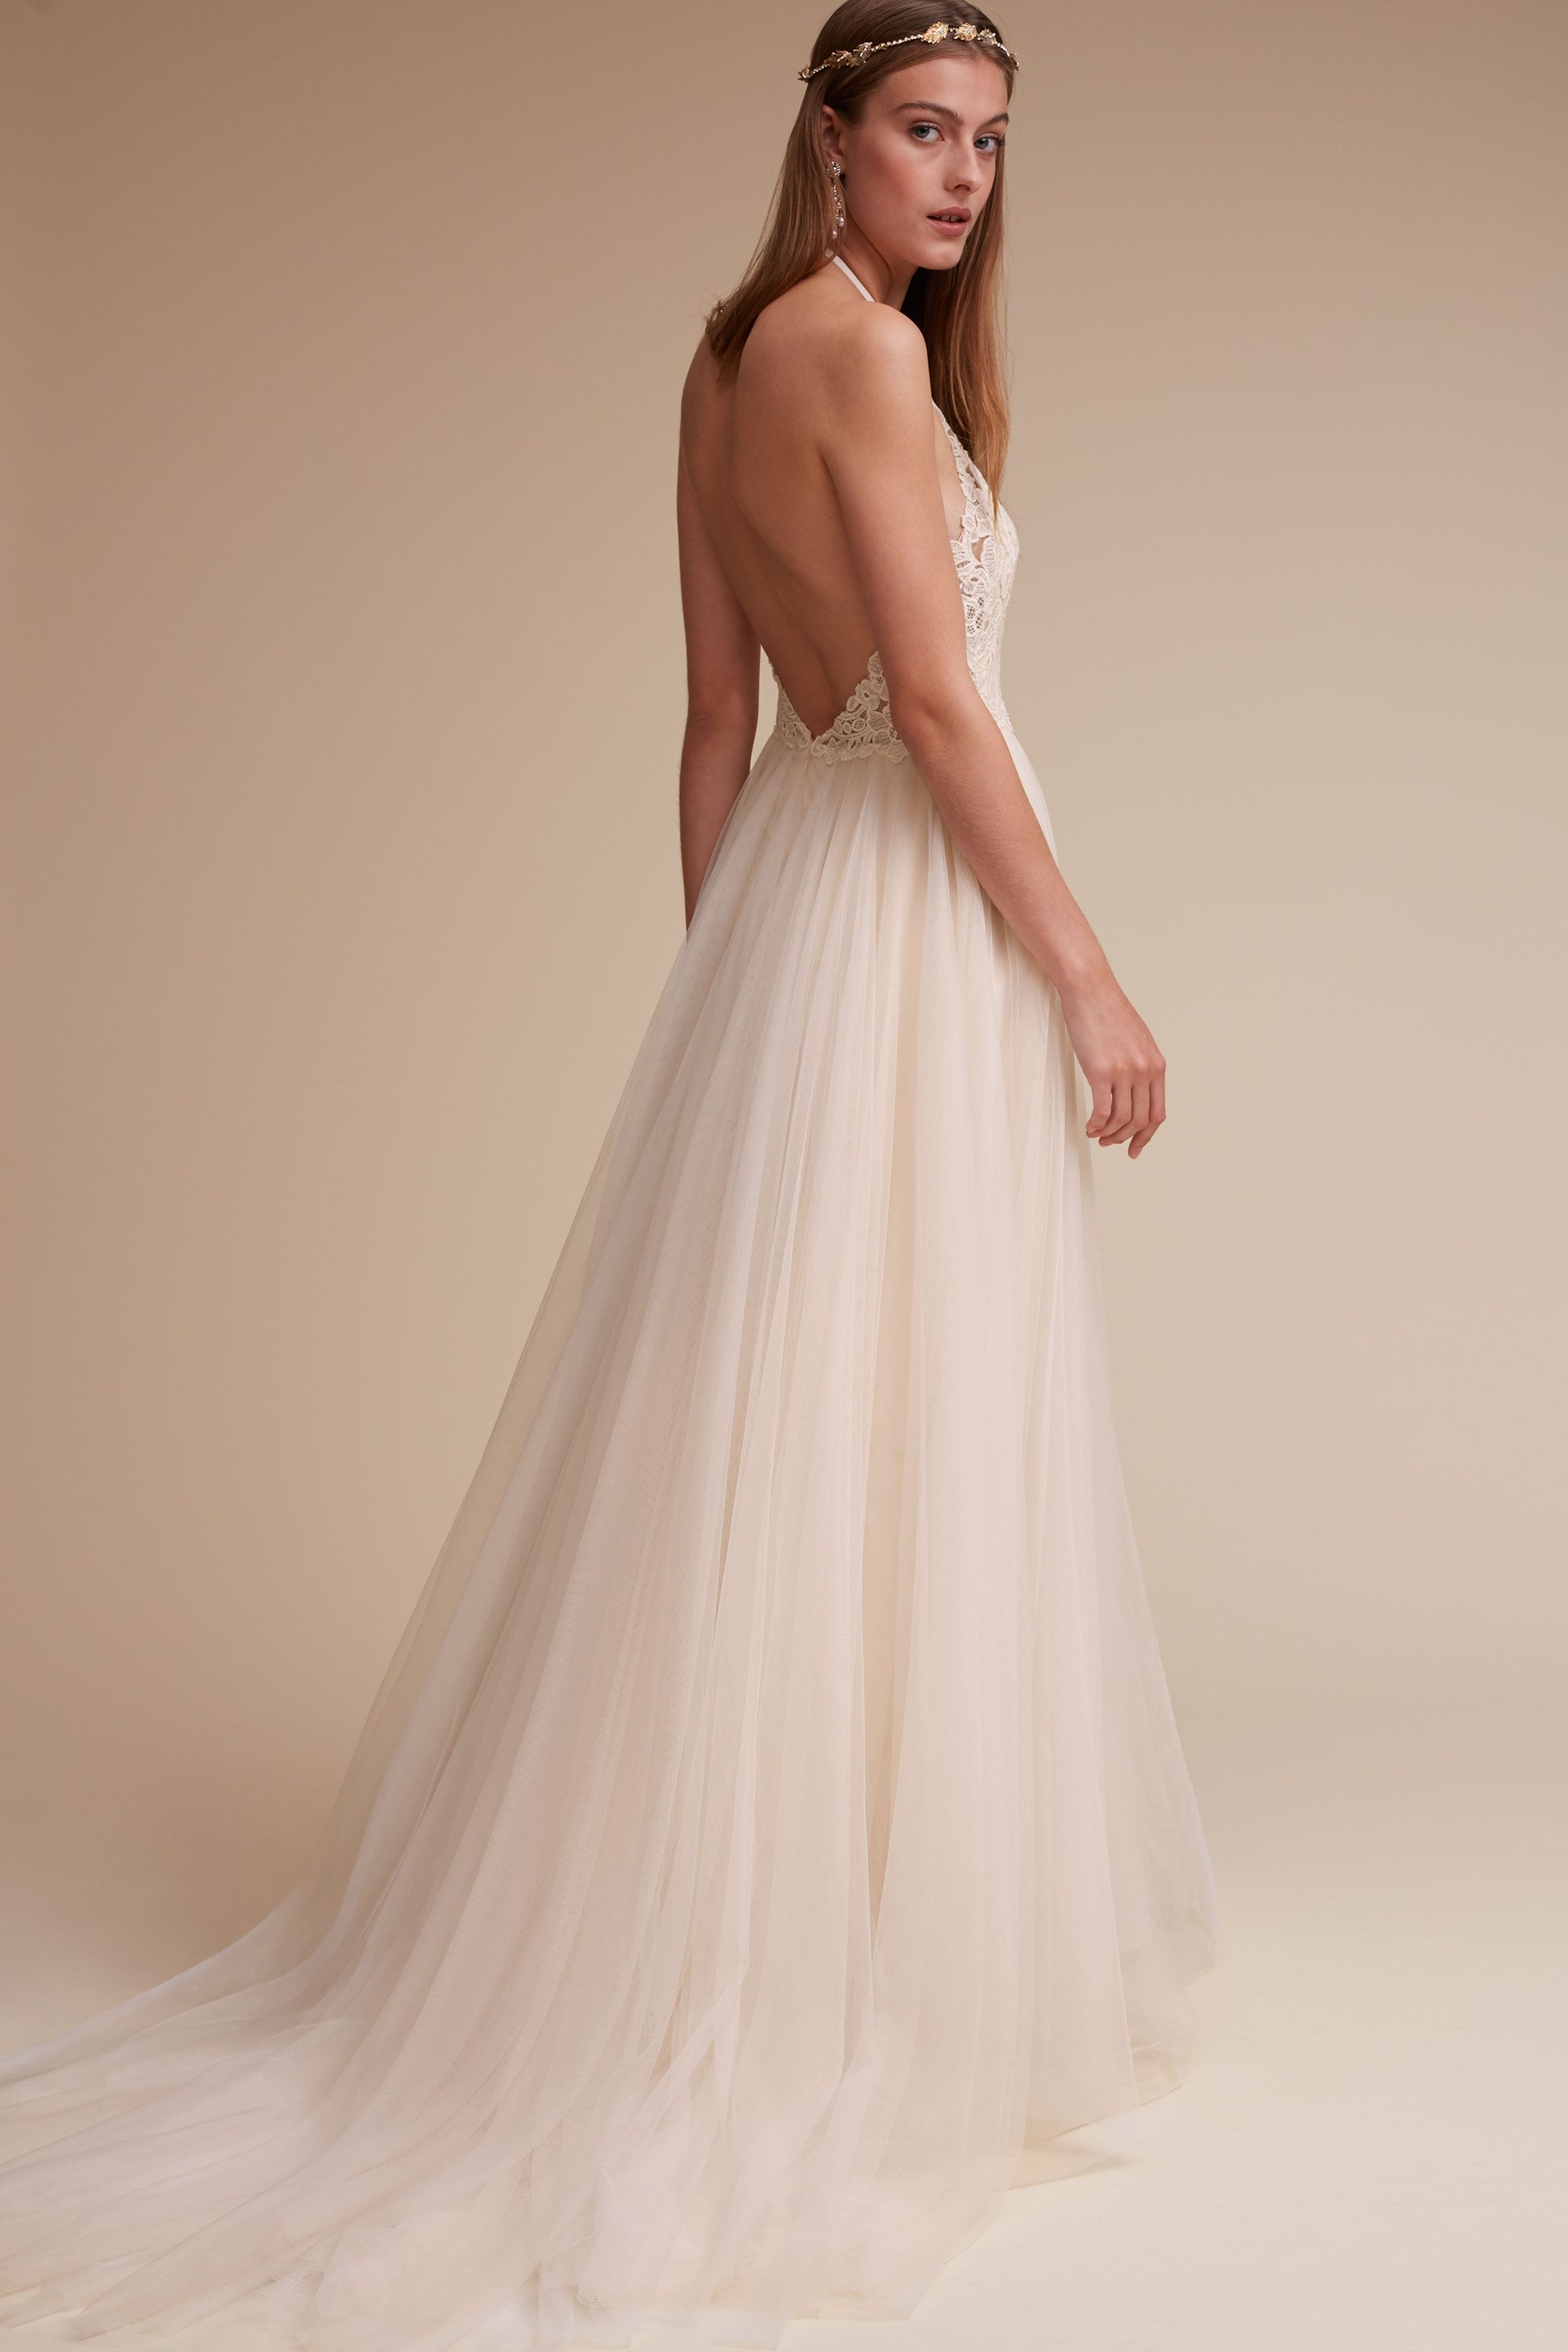 Josie Gown From Bhldn It S The Perfect Halter Dress Make Sure